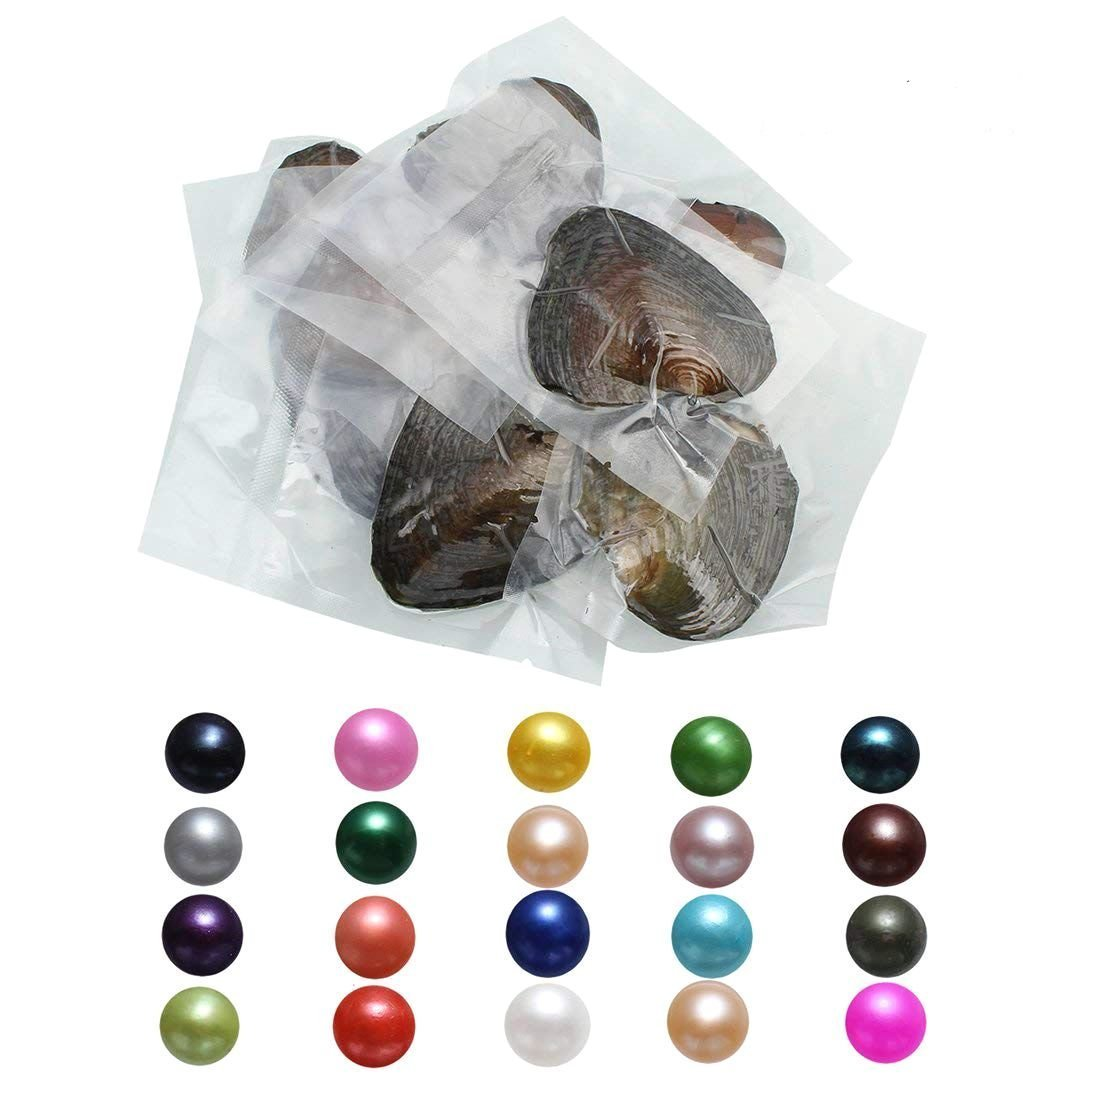 POSHOPS 15PC Freshwater Cultured Oysters with Pearls Inside Pearl Oysters for Wedding Anniversary Gift Random Color 7-8mm